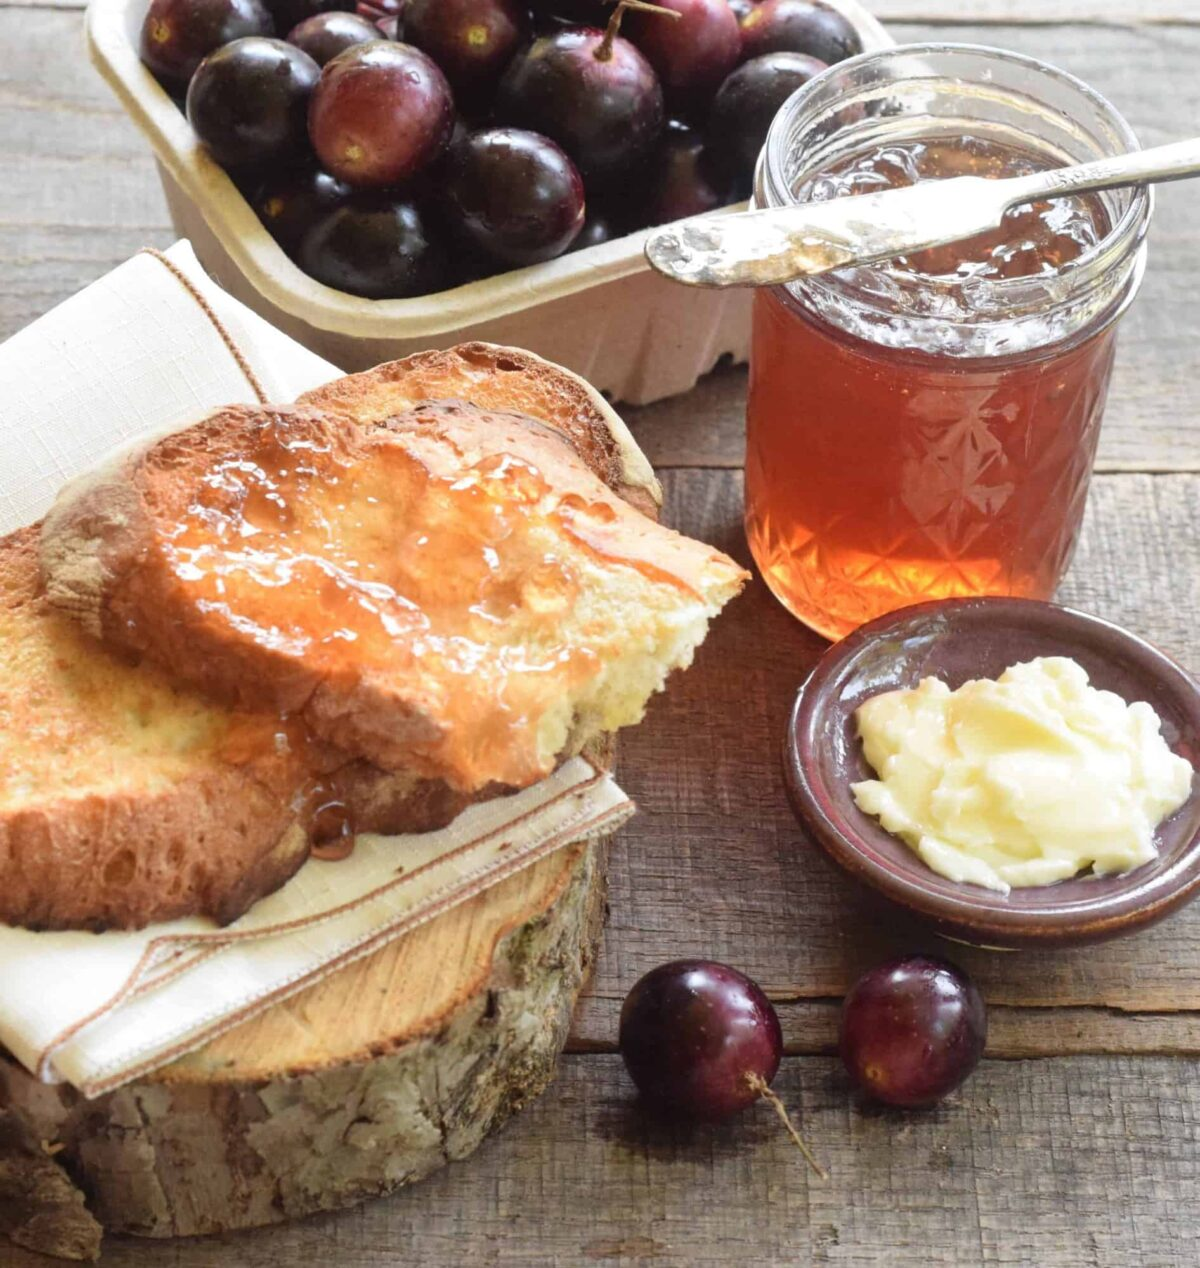 scuppernong jelly in a jar with knife resting on it, buttered bread with jelly on a log slice, muscadine grapes on a wooden surface